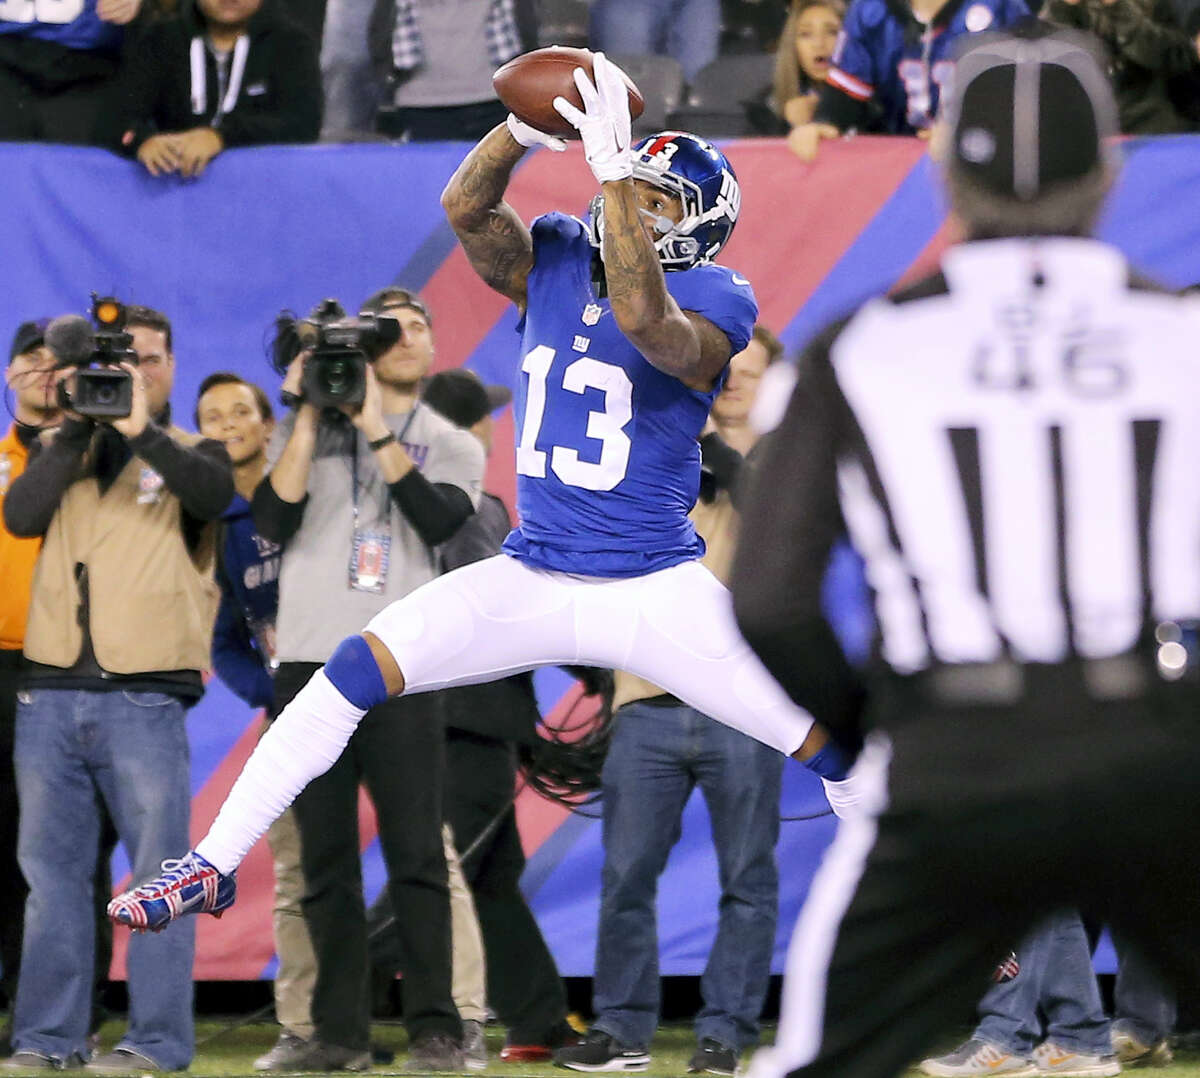 There's plenty at stake for the New York Giants and wide receiver Odell Beckham Jr. when they visit the Philadelphia Eagles. The Giants (10-4) can clinch a playoff berth with a victory tonight.